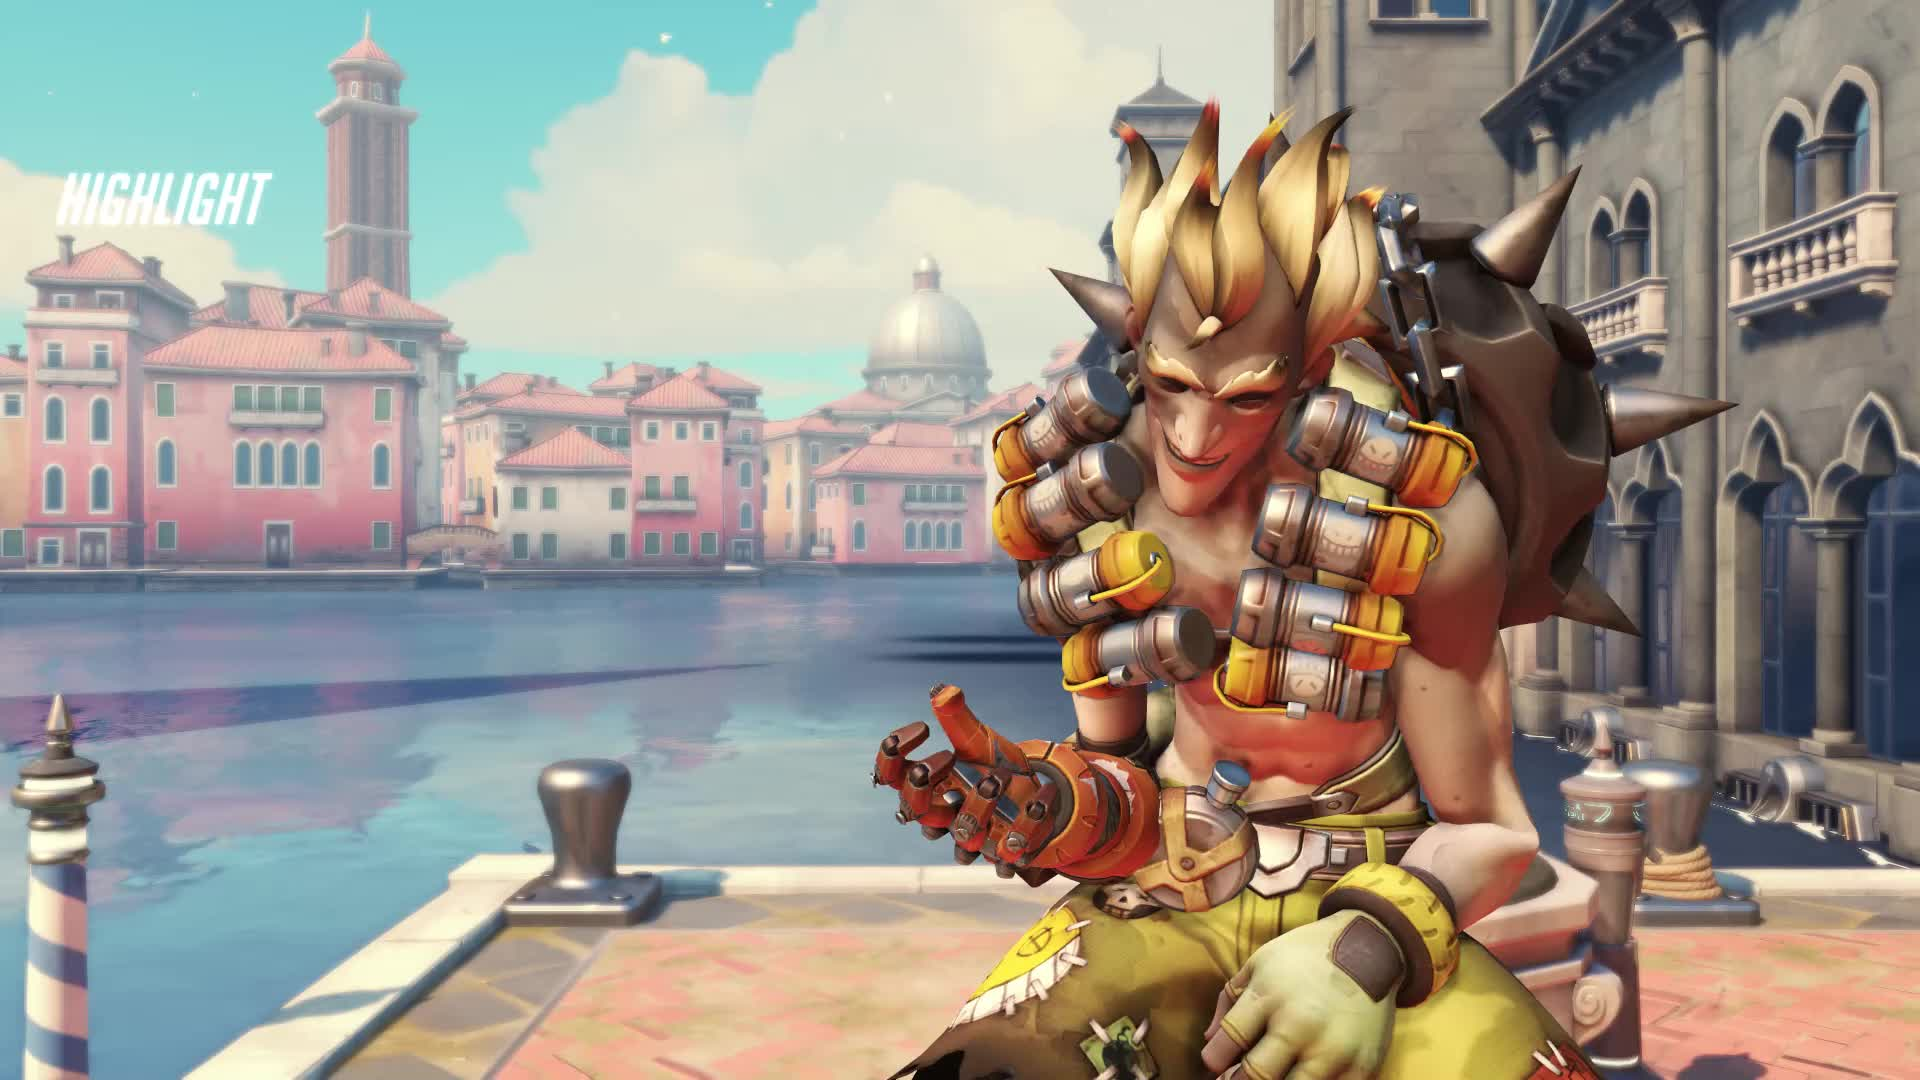 highlight, junkrat, overtime, overwatch, nerf this GIFs